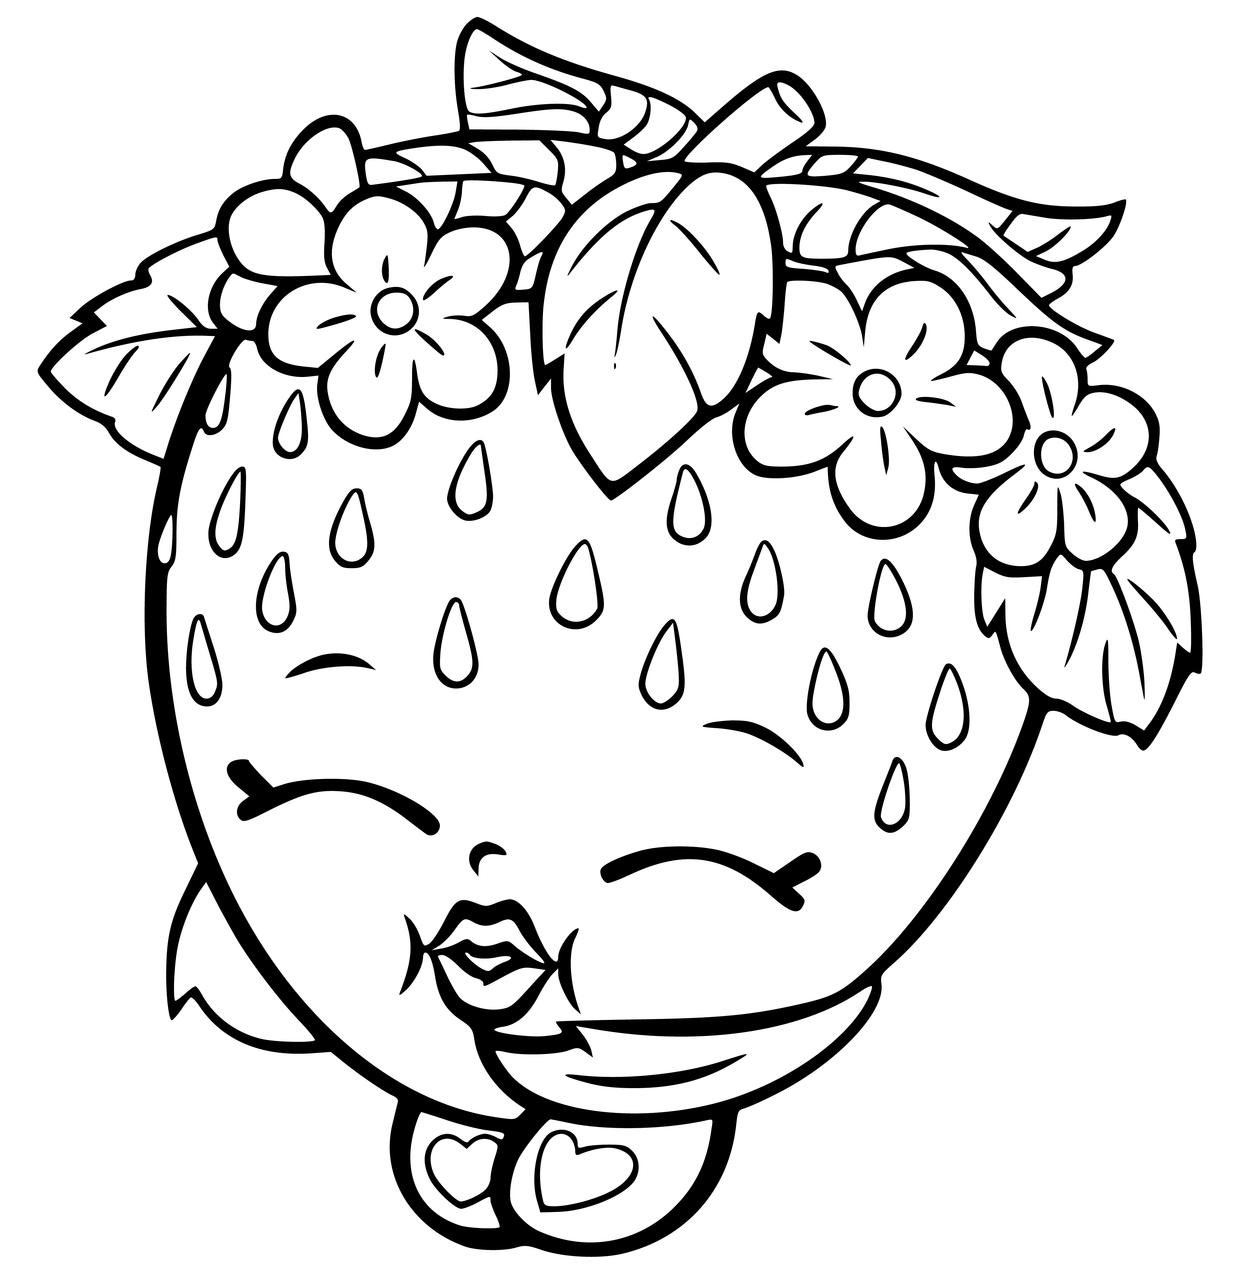 shopkins drawings collection of shopkin clipart free download best shopkin shopkins drawings